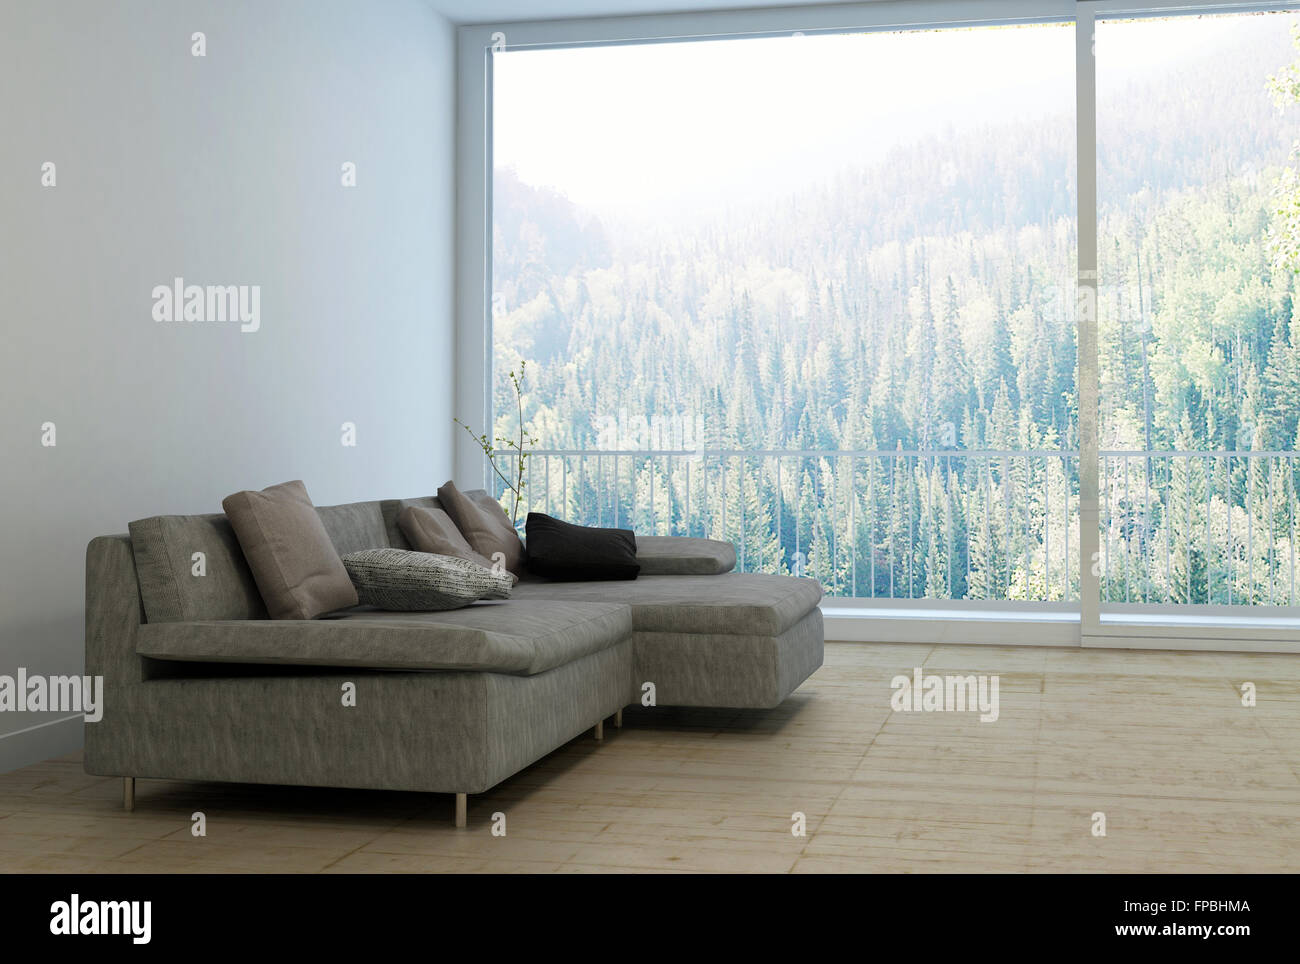 Comfortable Sectional Sofa With Cushions In Empty Spacious Living Room With  Large Window And View Overlooking Lush Forest Shrouded With Fog On Sunny Day